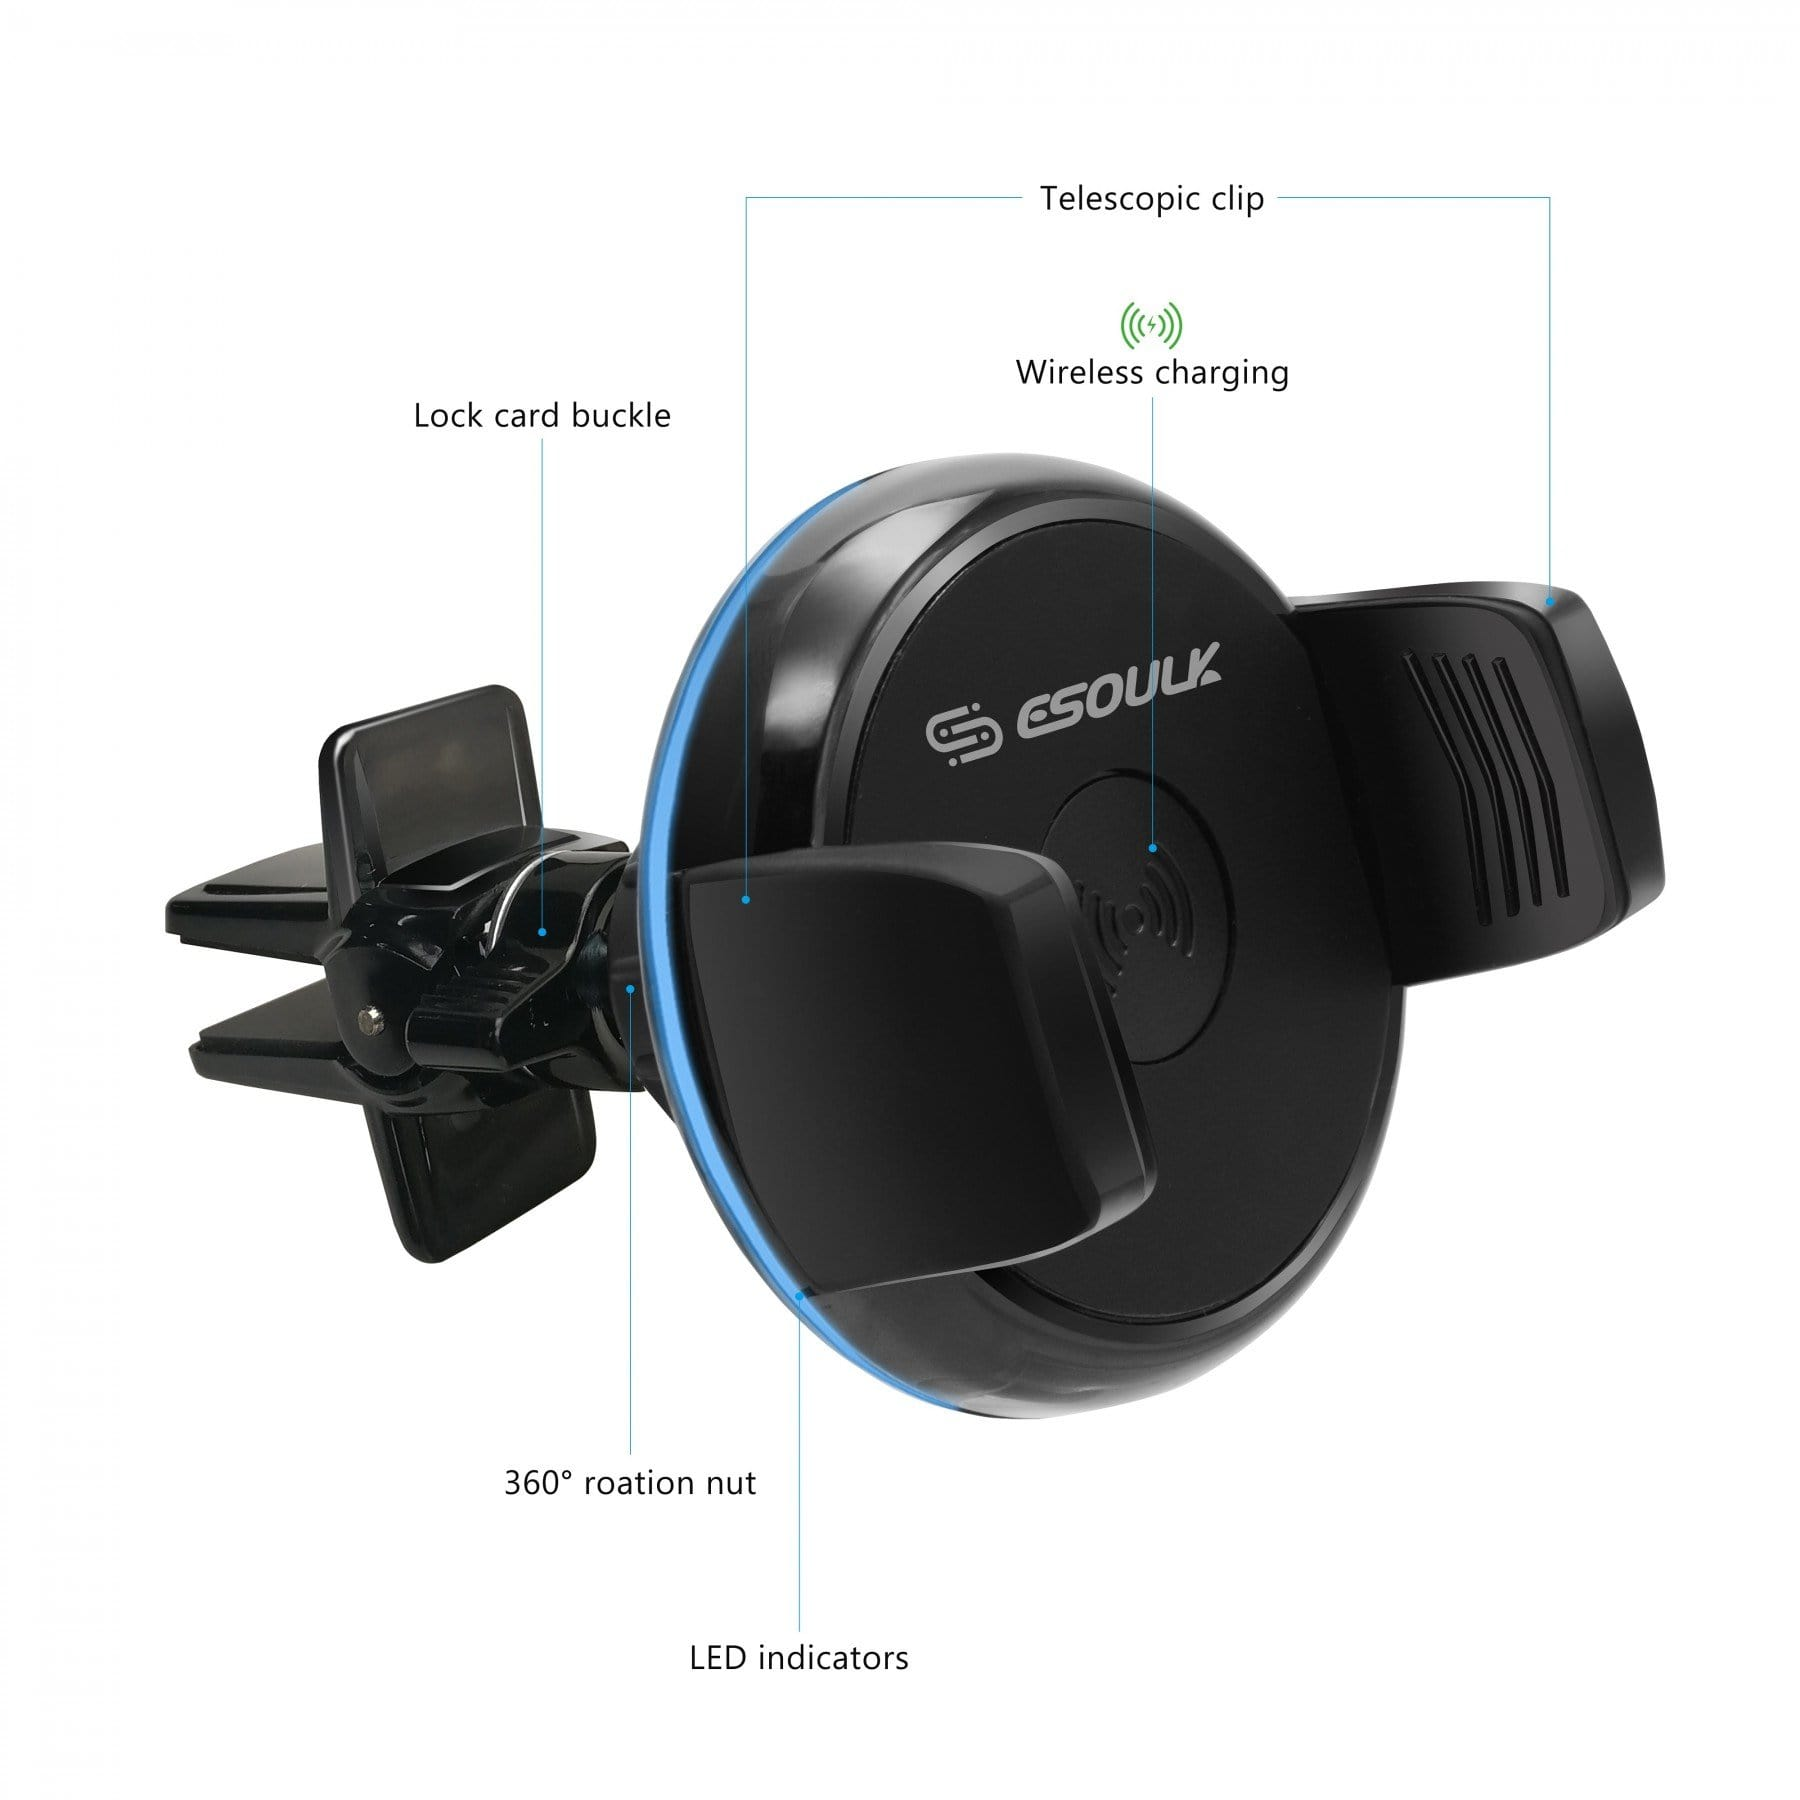 Esoulk Wireless Charger 5Watt Car Air Vent Holder EH31P